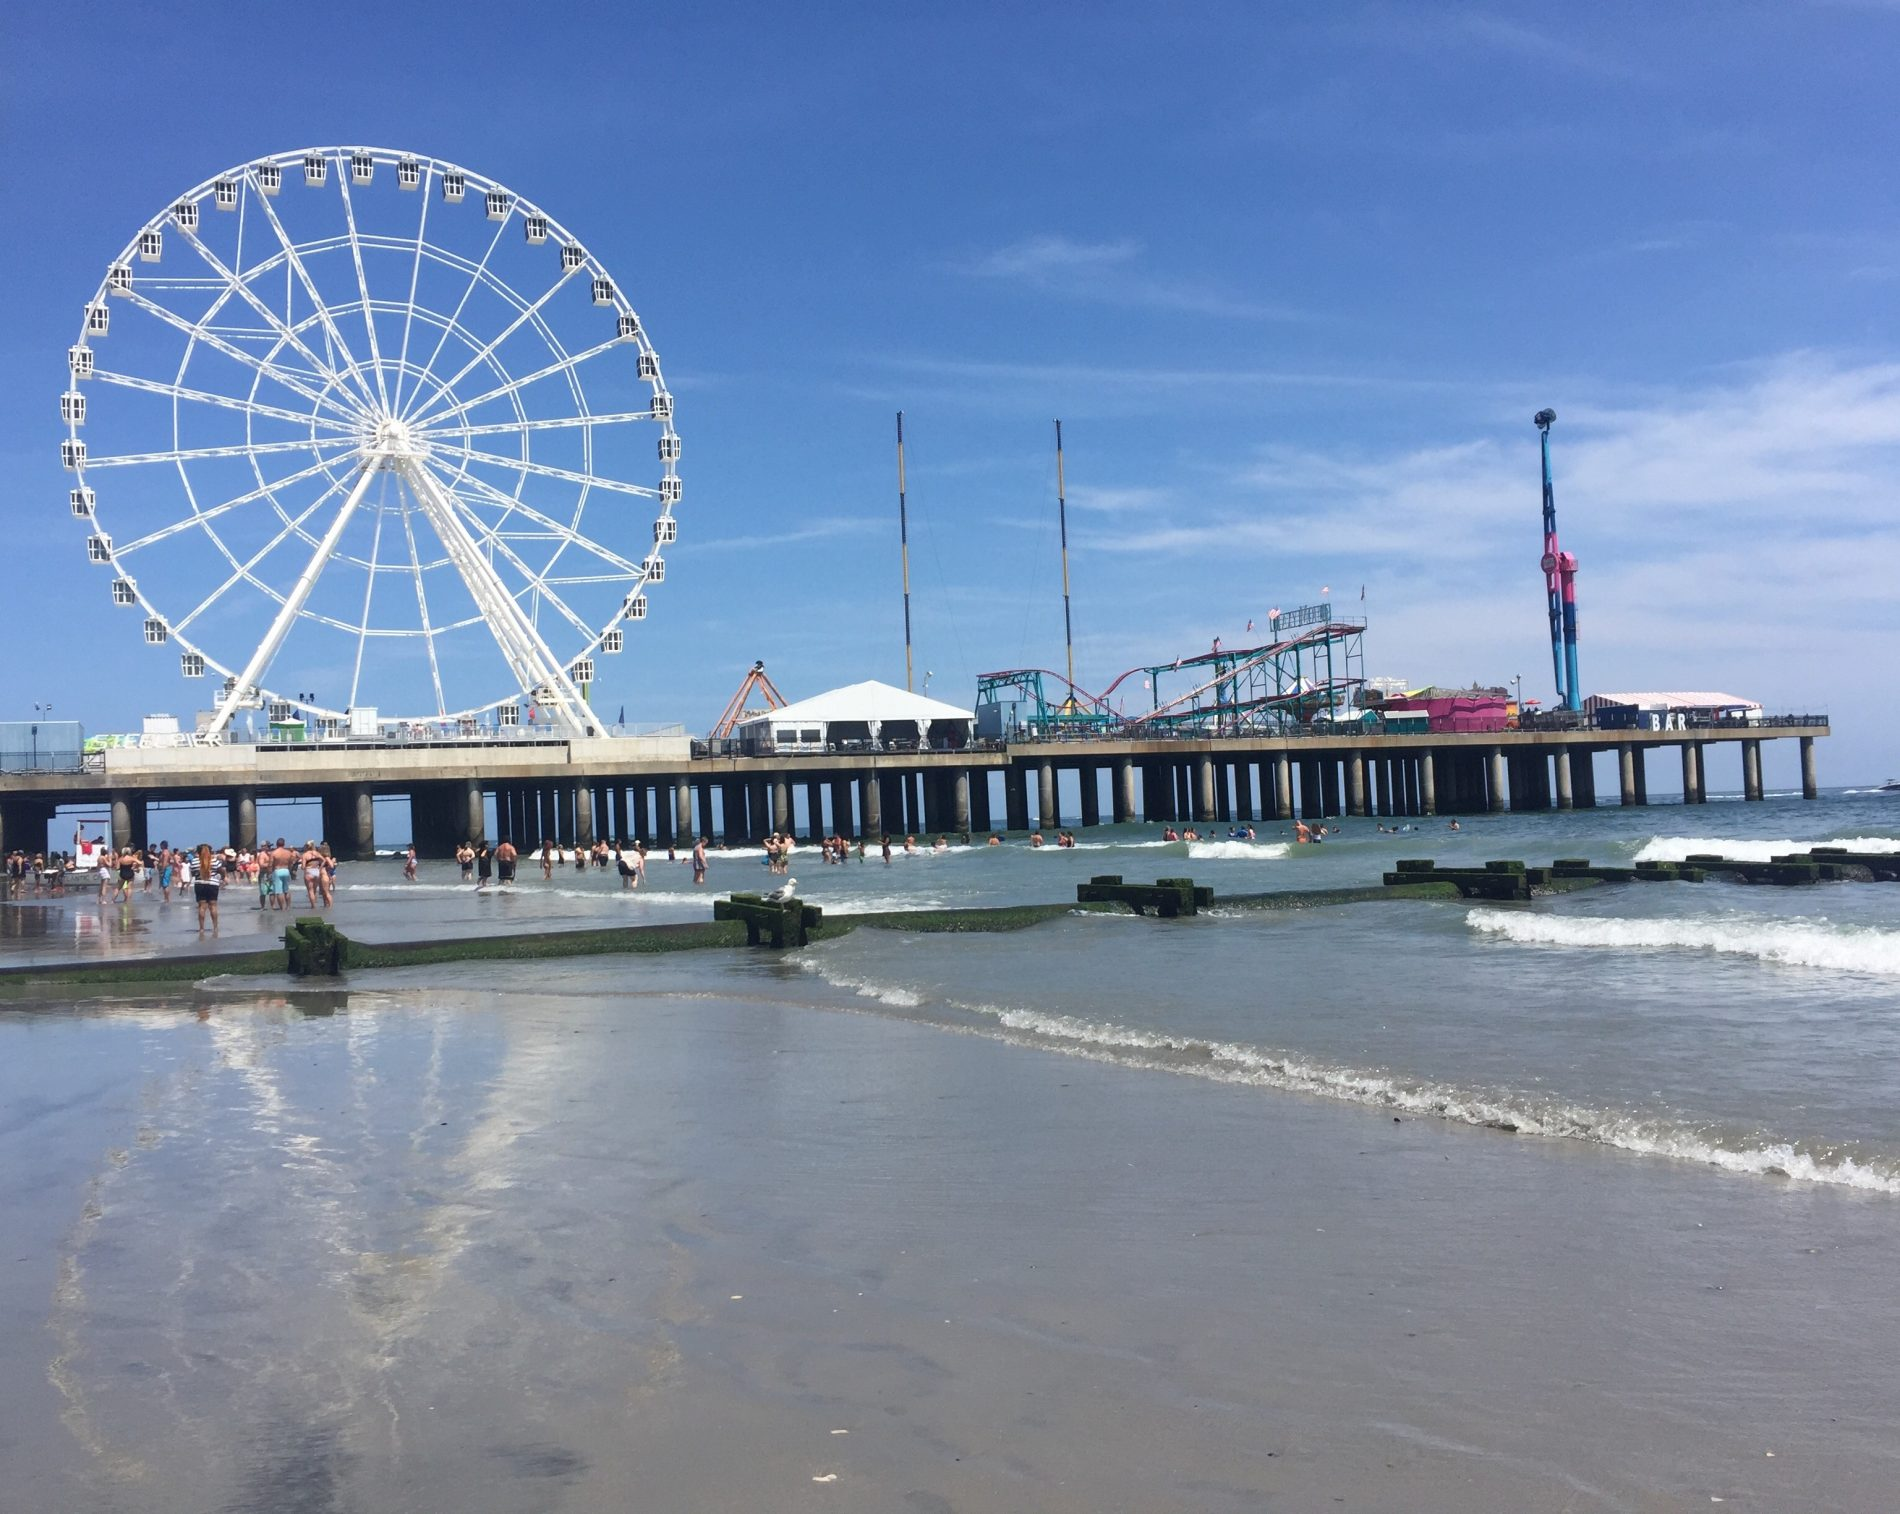 Stay-cation in Atlantic City